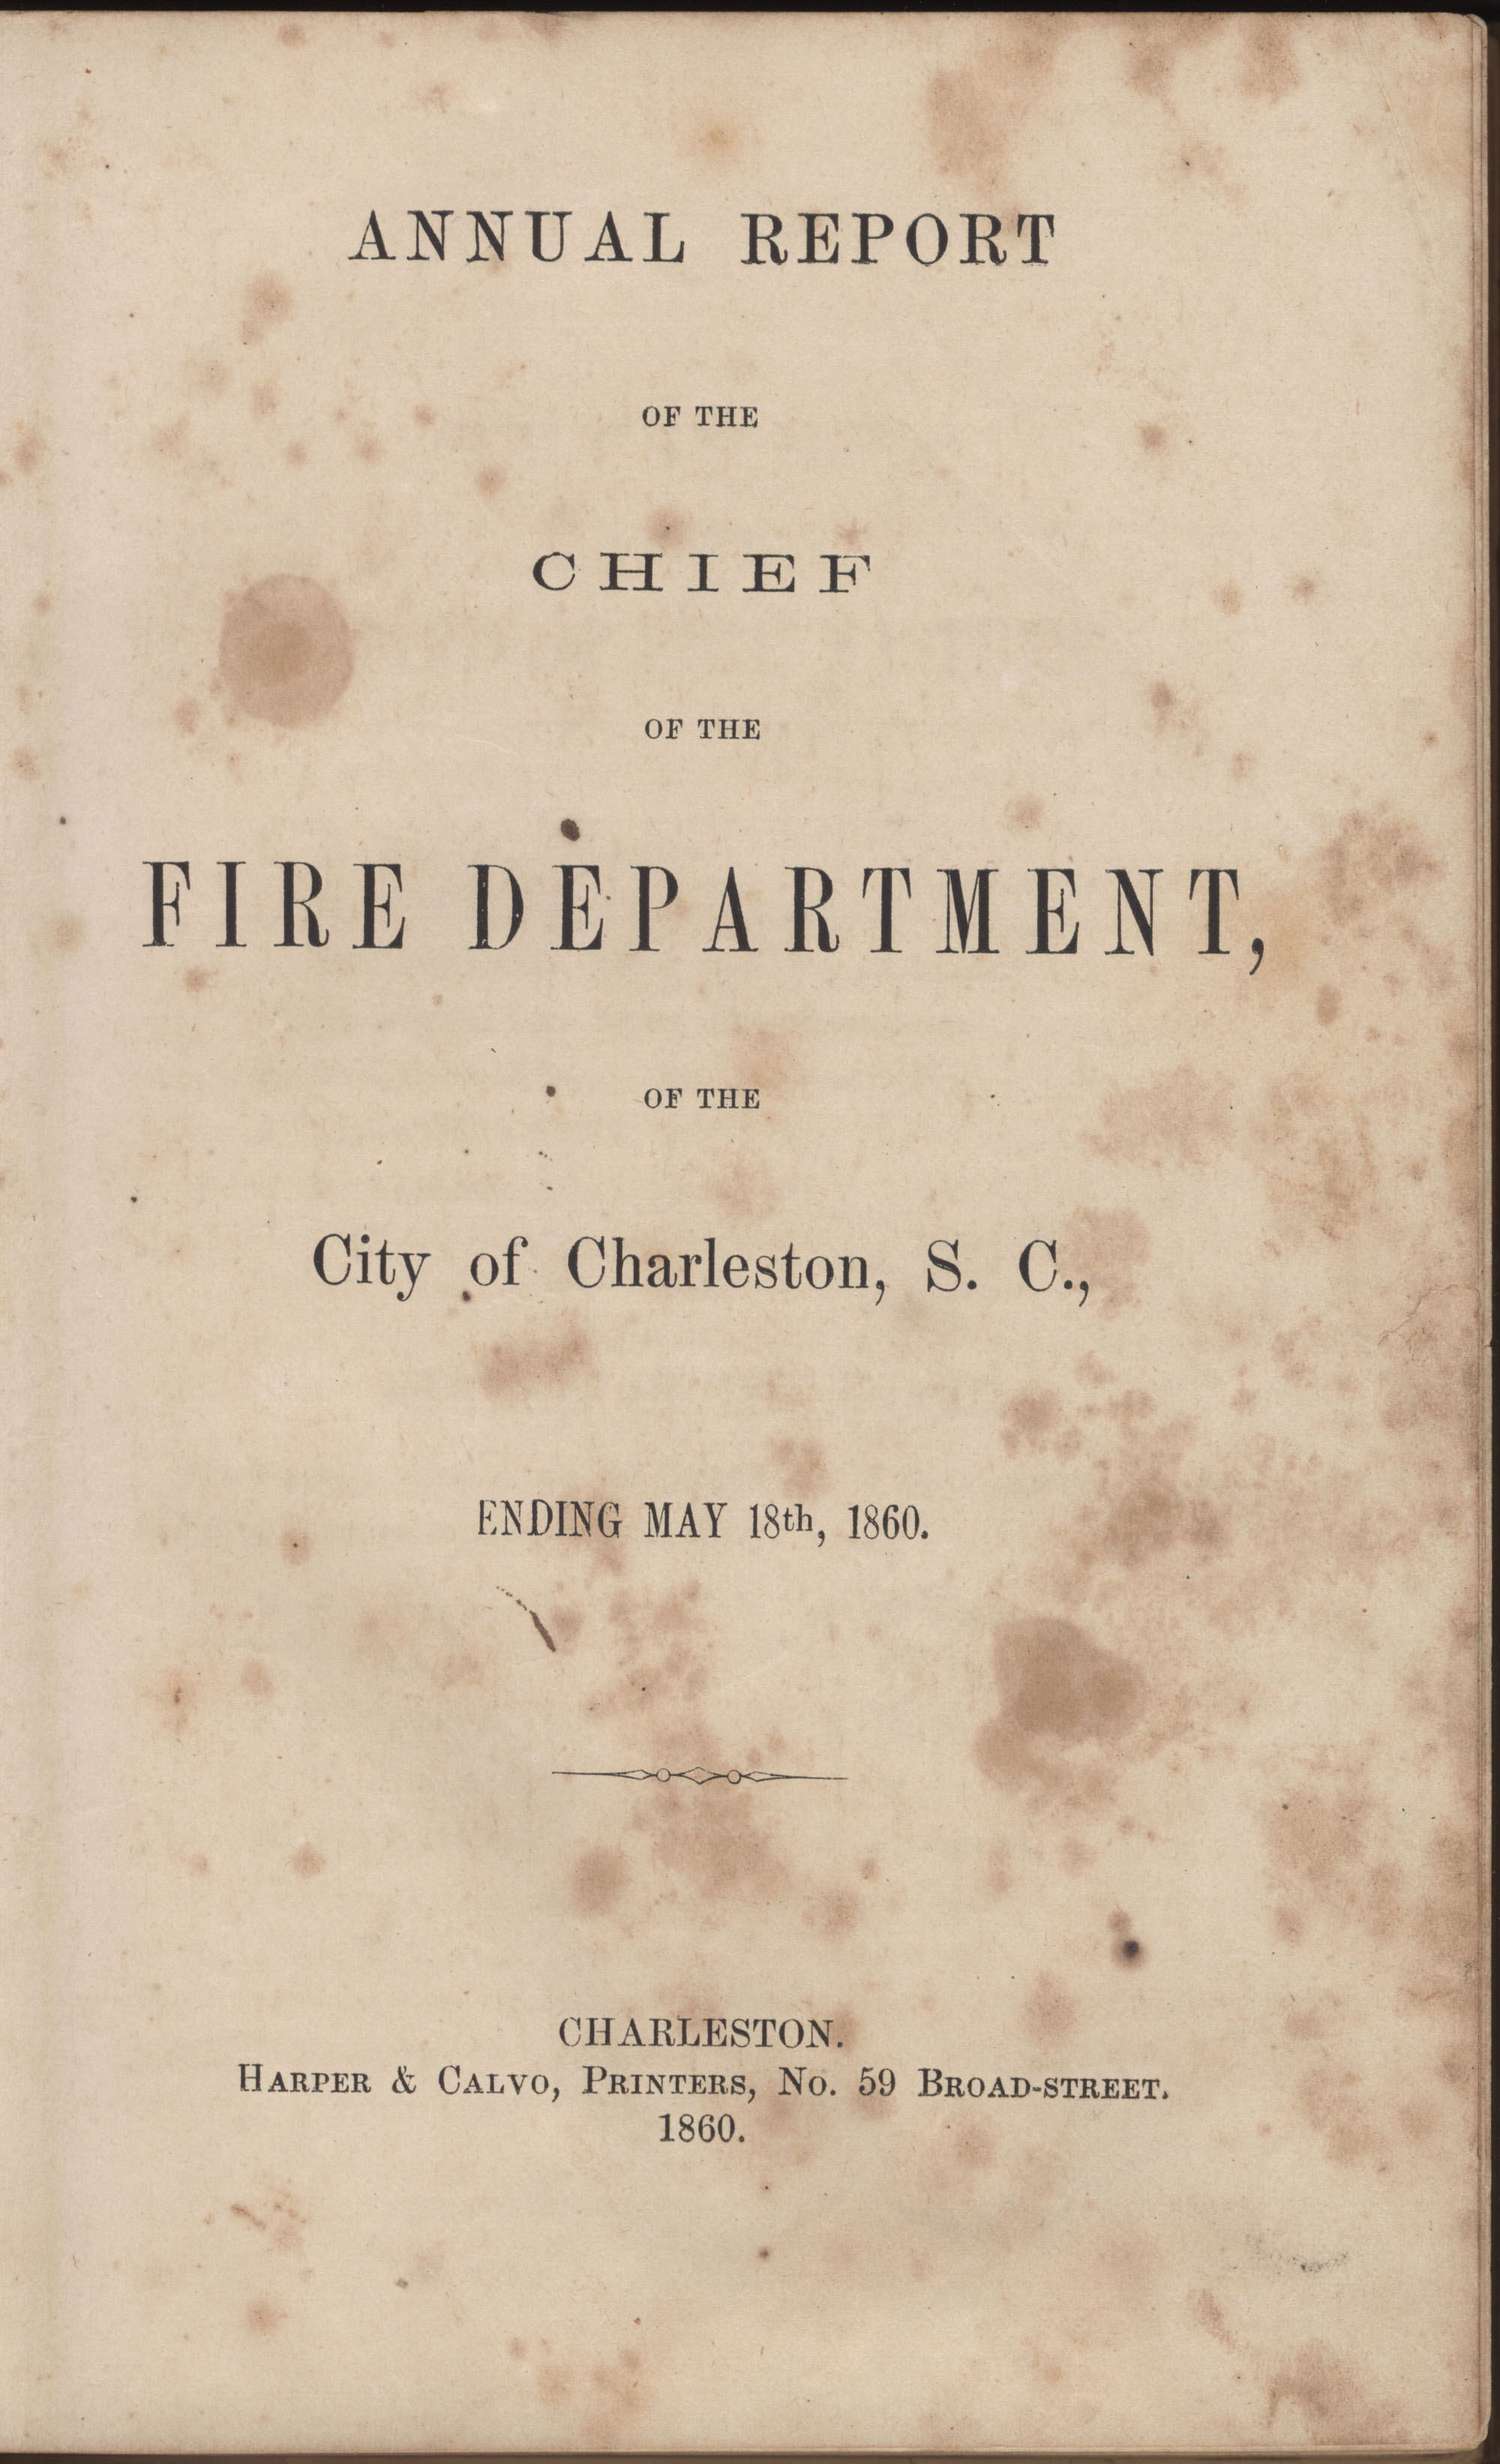 Annual Report of the Chief of the Fire Department of the City of Charleston, page 29